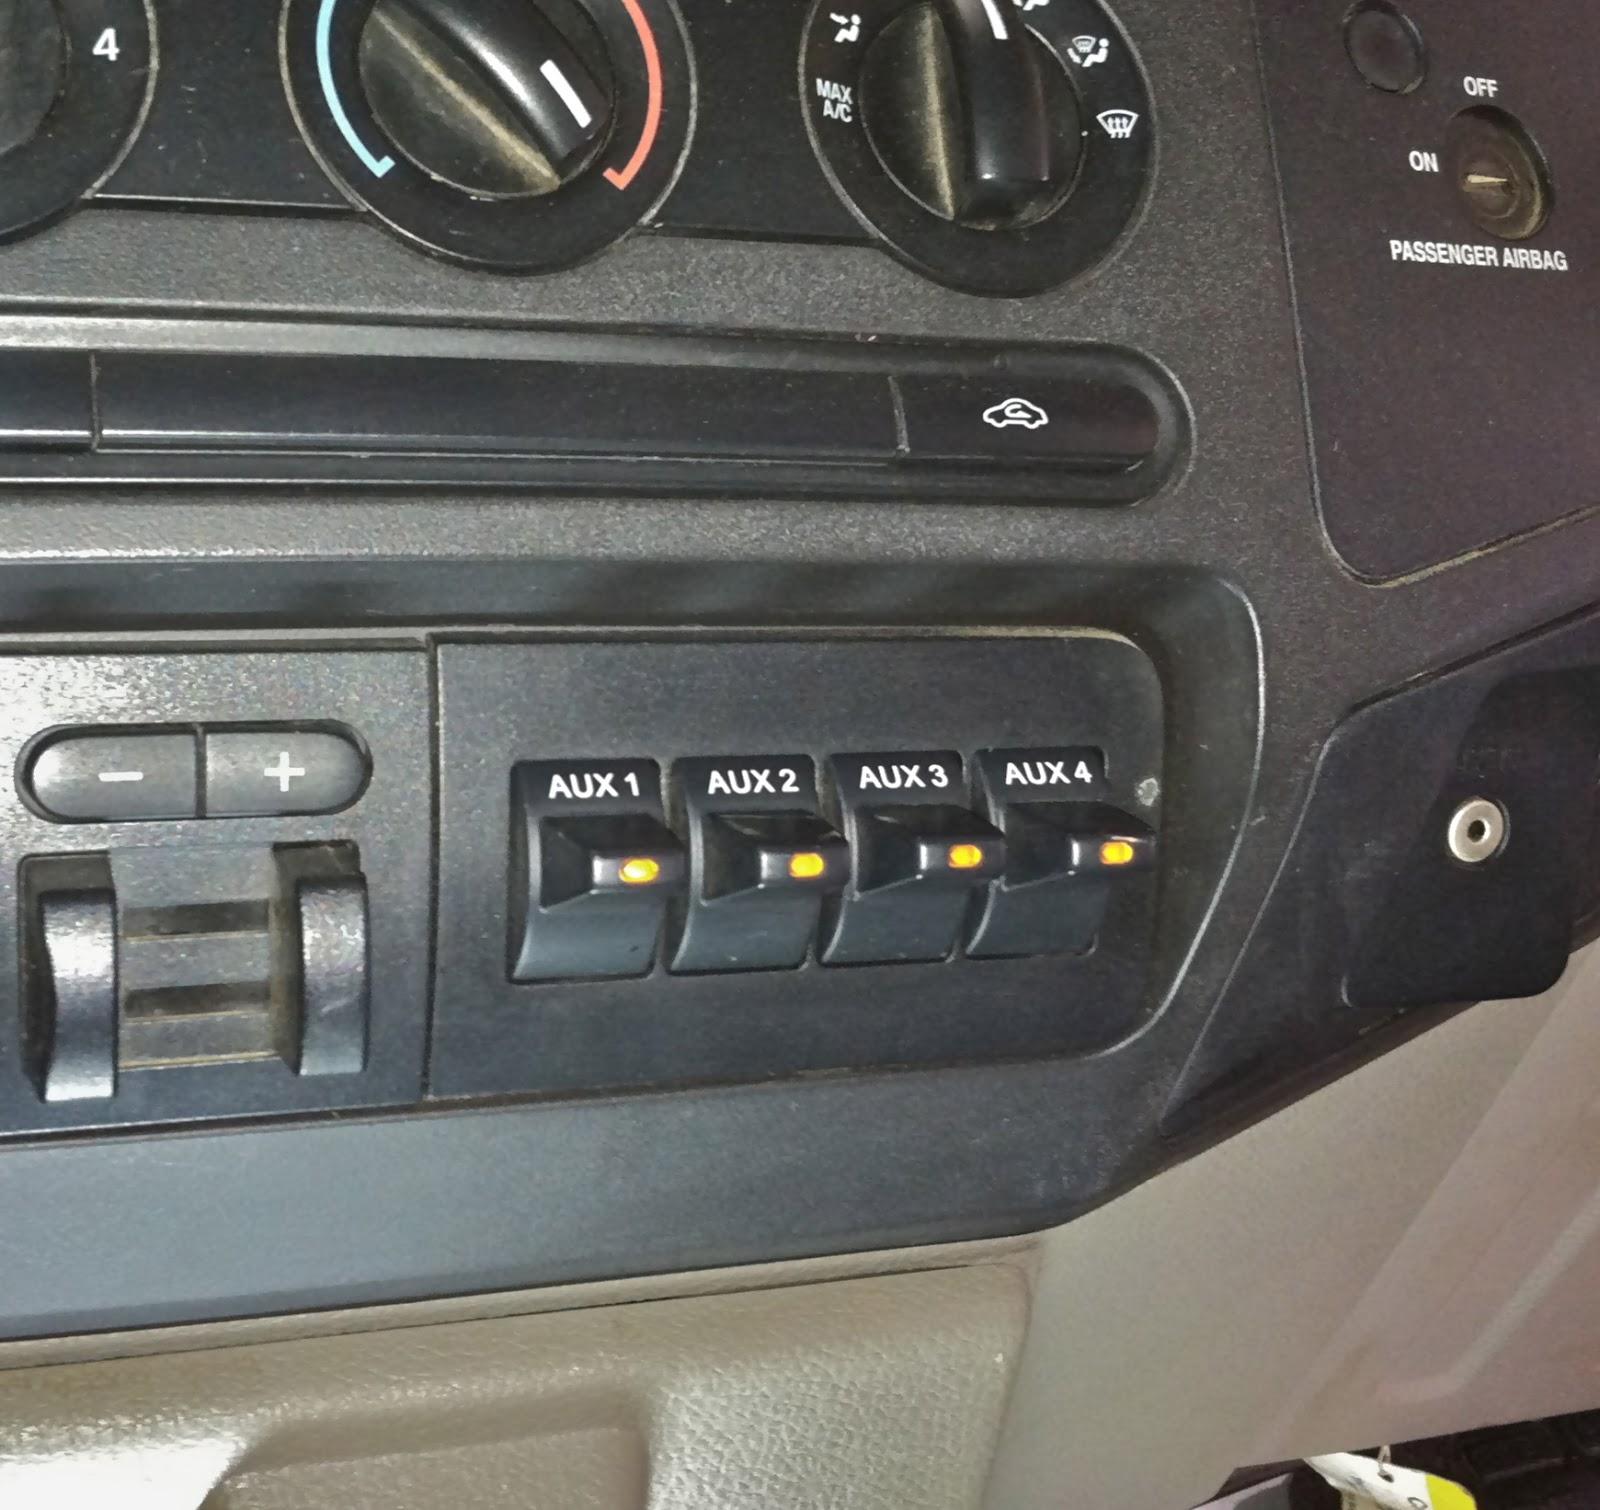 1992 ford f250 radio wiring diagram car audio tips tricks and how to s ford f series super 2012 ford f250 upfitter wiring diagram